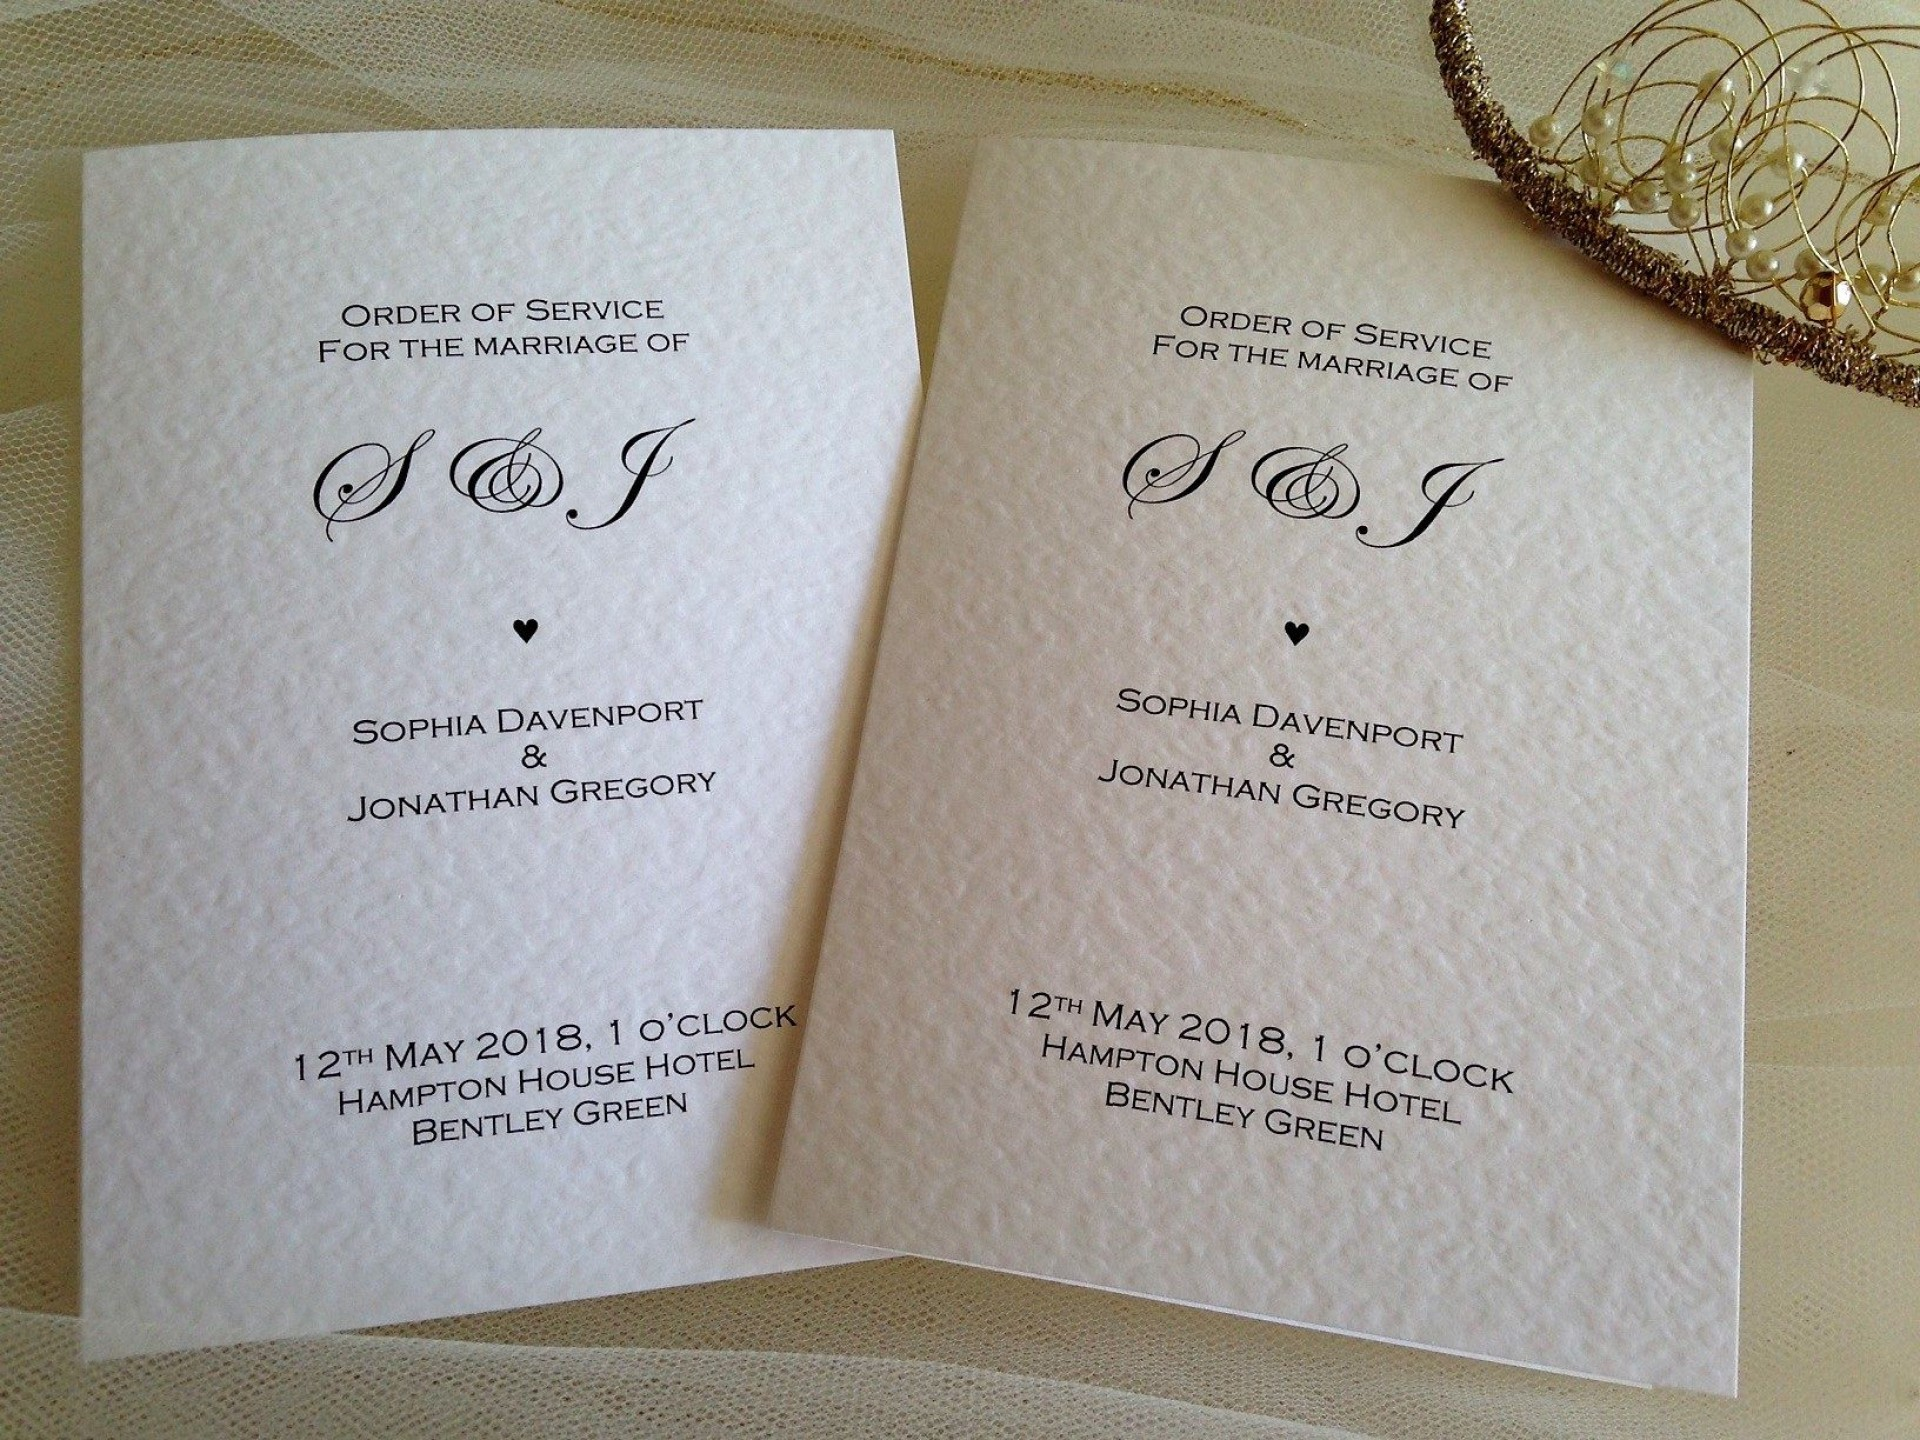 006 Surprising Traditional Wedding Order Of Service Template Uk Concept 1920